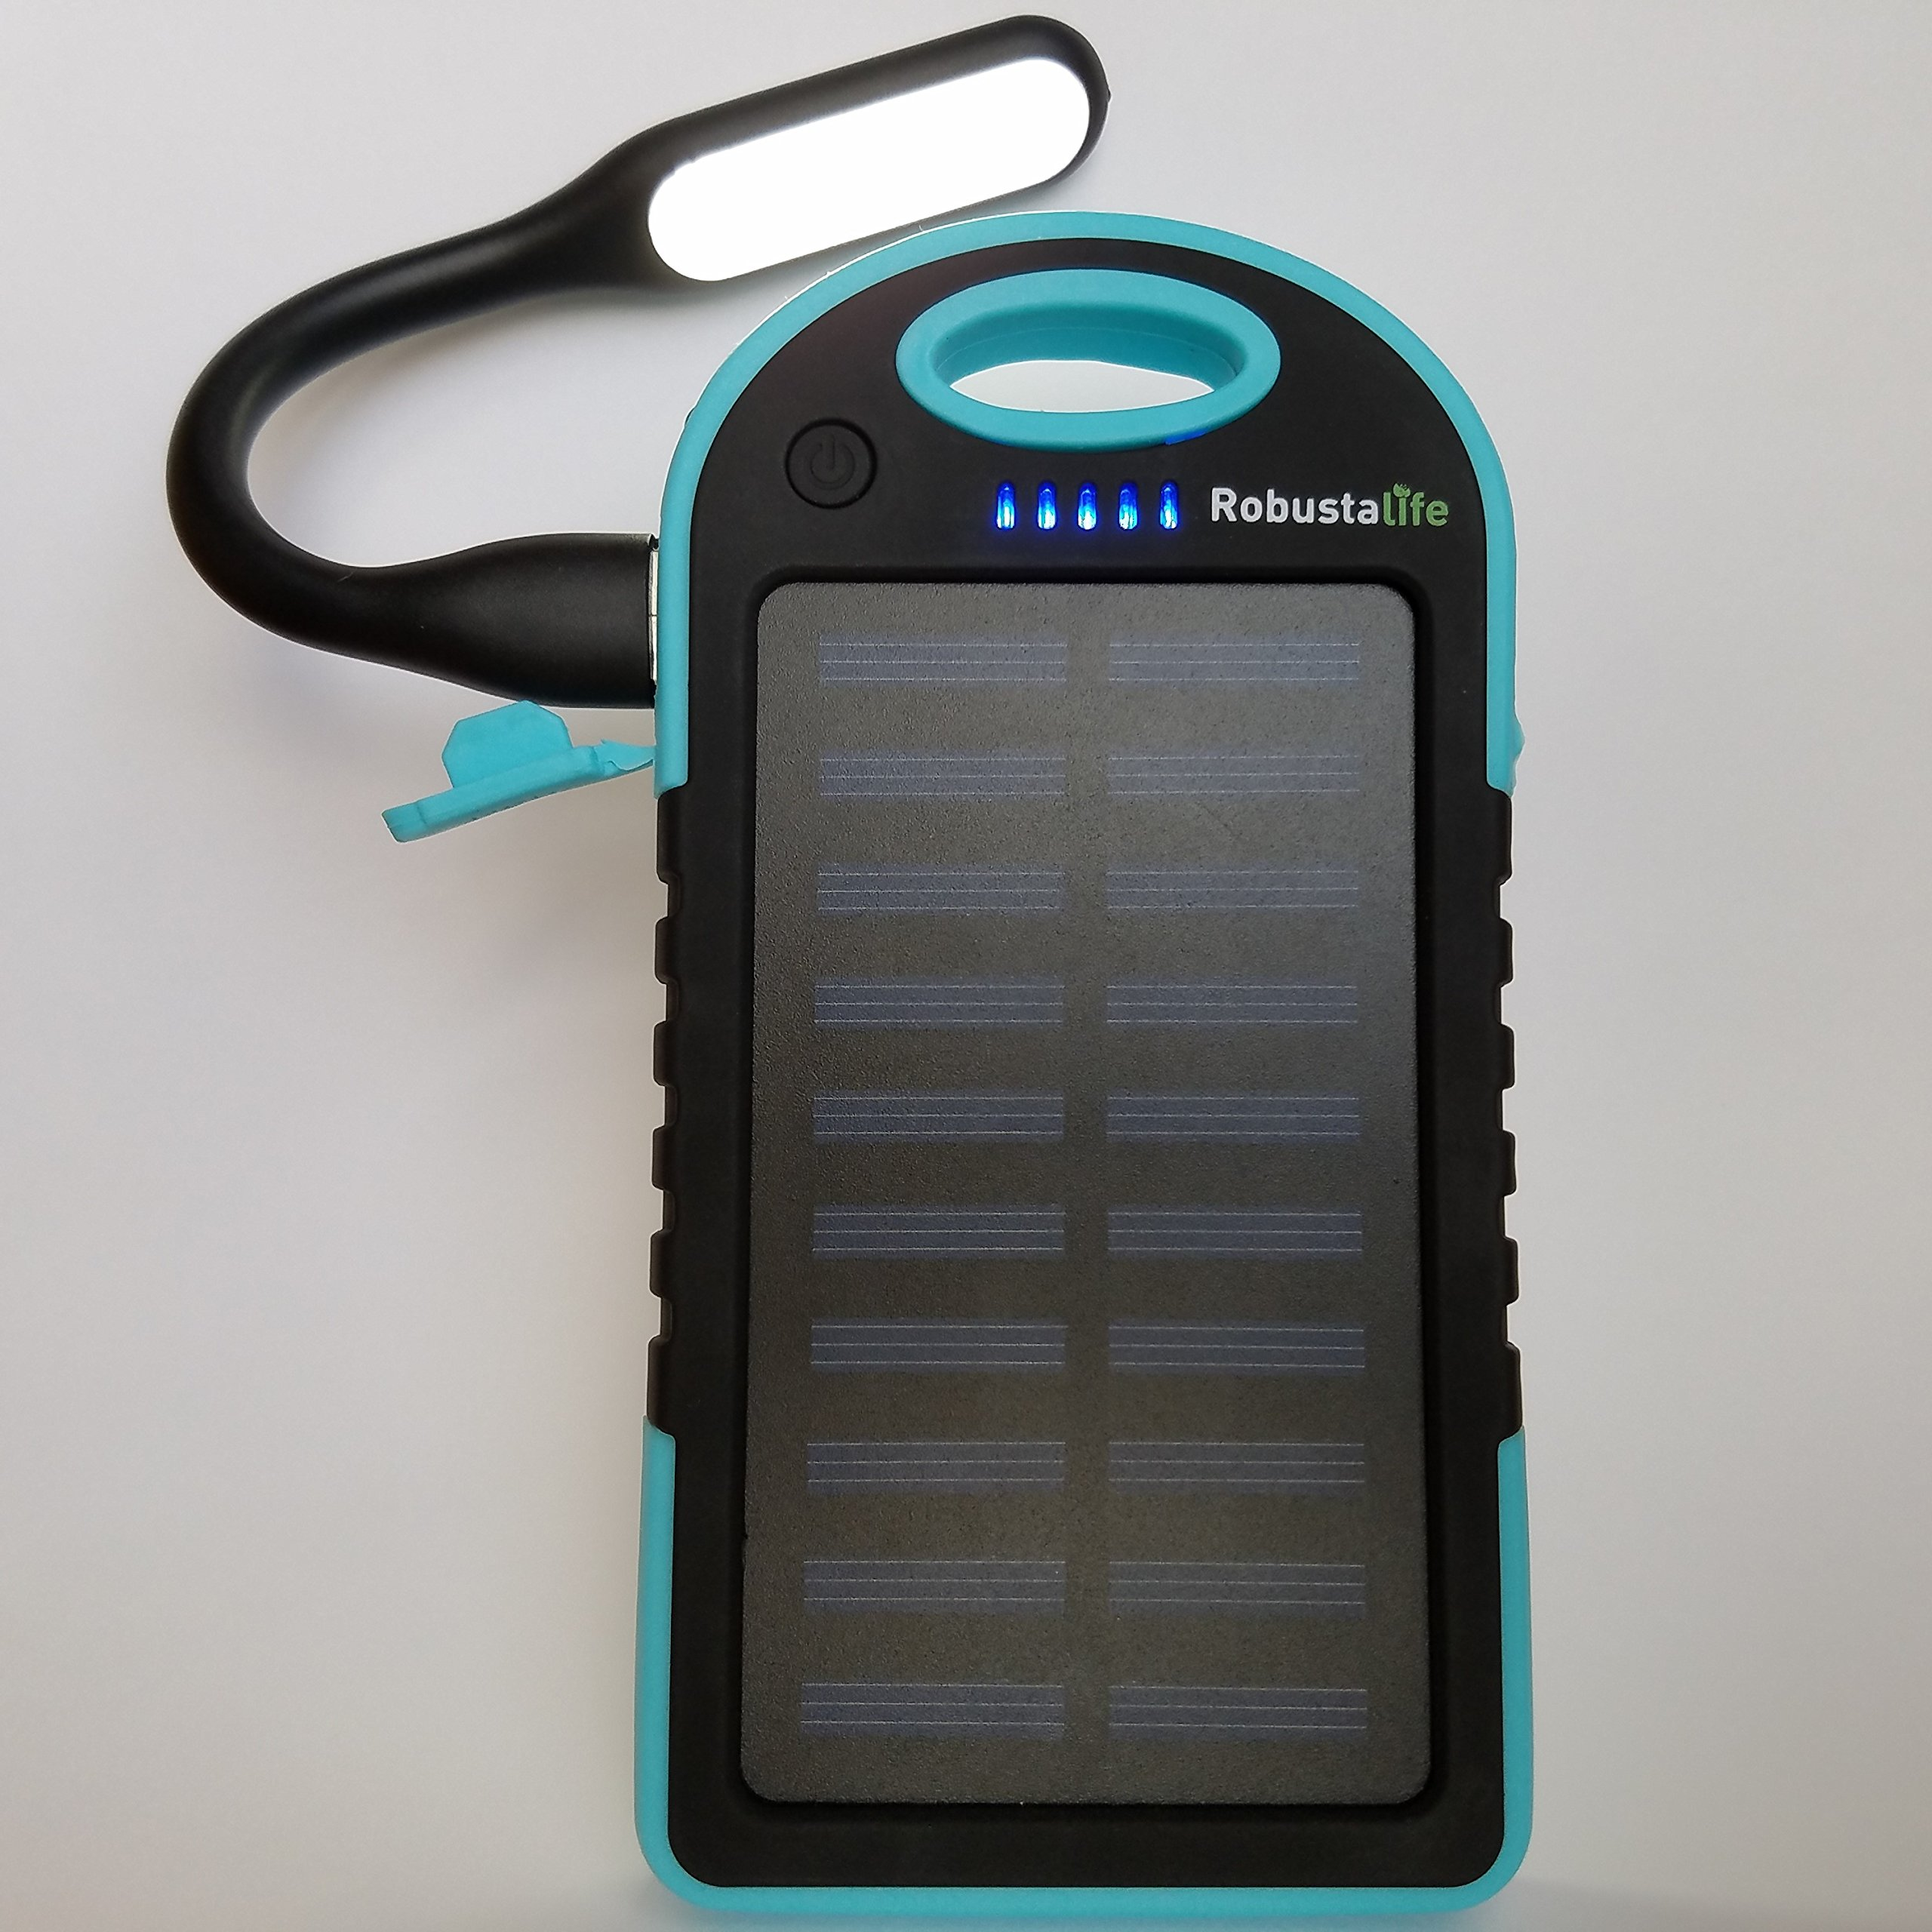 5000 mAh Solar Power Bank By Robustalife – Portable, Waterproof, Shockproof & Dustproof Cell Phone Battery Charger For iPhone, Samsung, Android Smartphones, USB Cameras – 5 LED Status Lights (Blue)